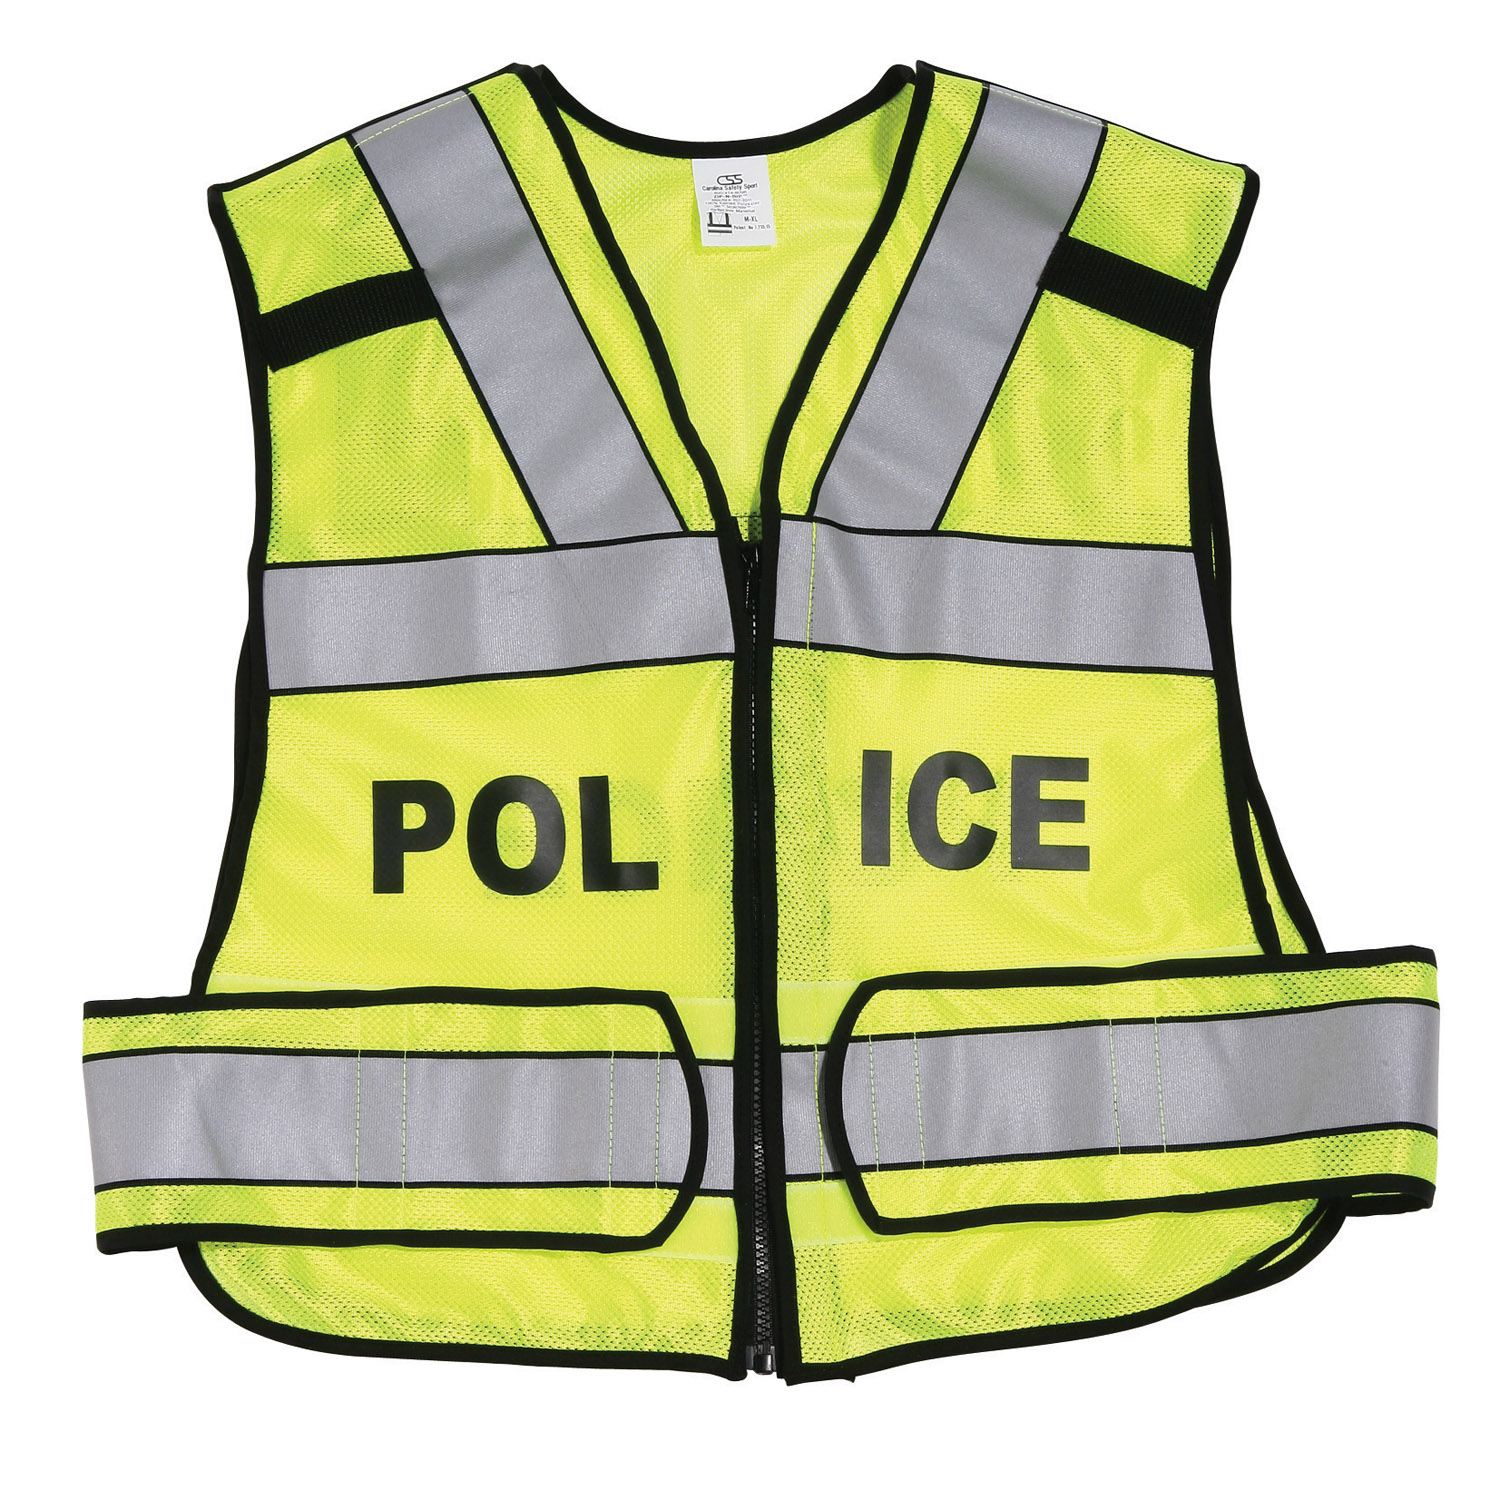 Galls ANSI 207-2006 V Style Safety Vest